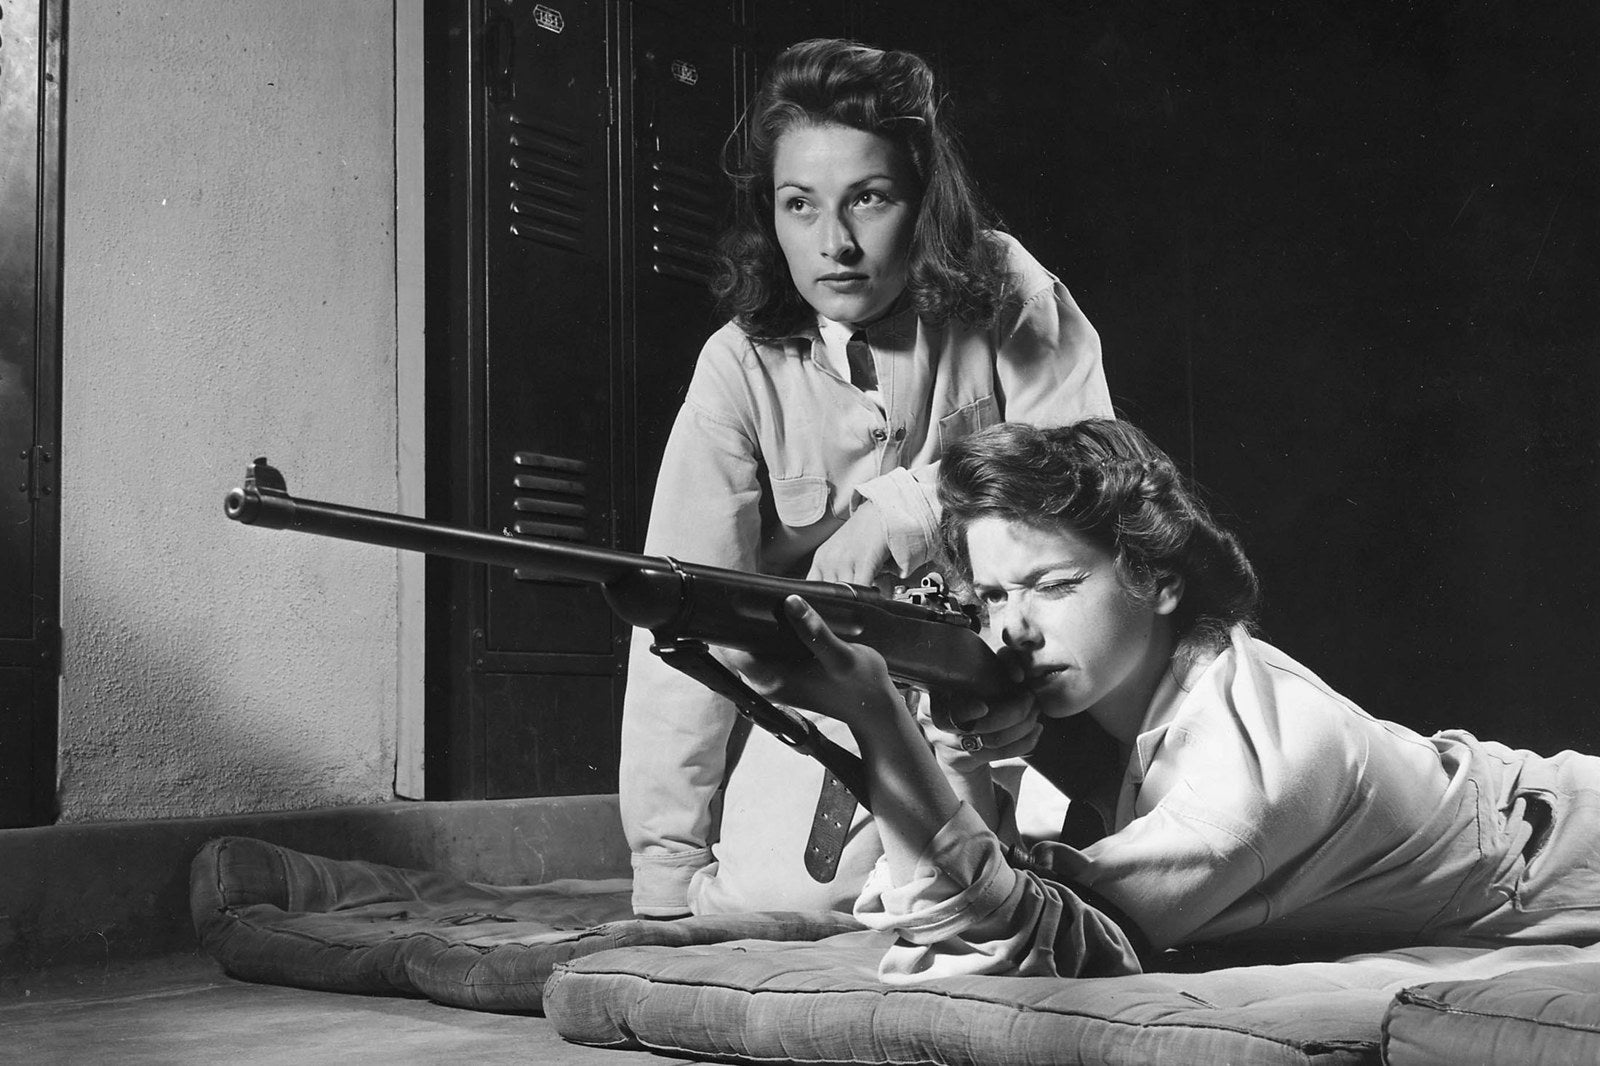 High school girls practice marksmanship at Roosevelt High School in Los Angeles as part of the school's Victory Corps, a program designed to train students for combat, 1942.